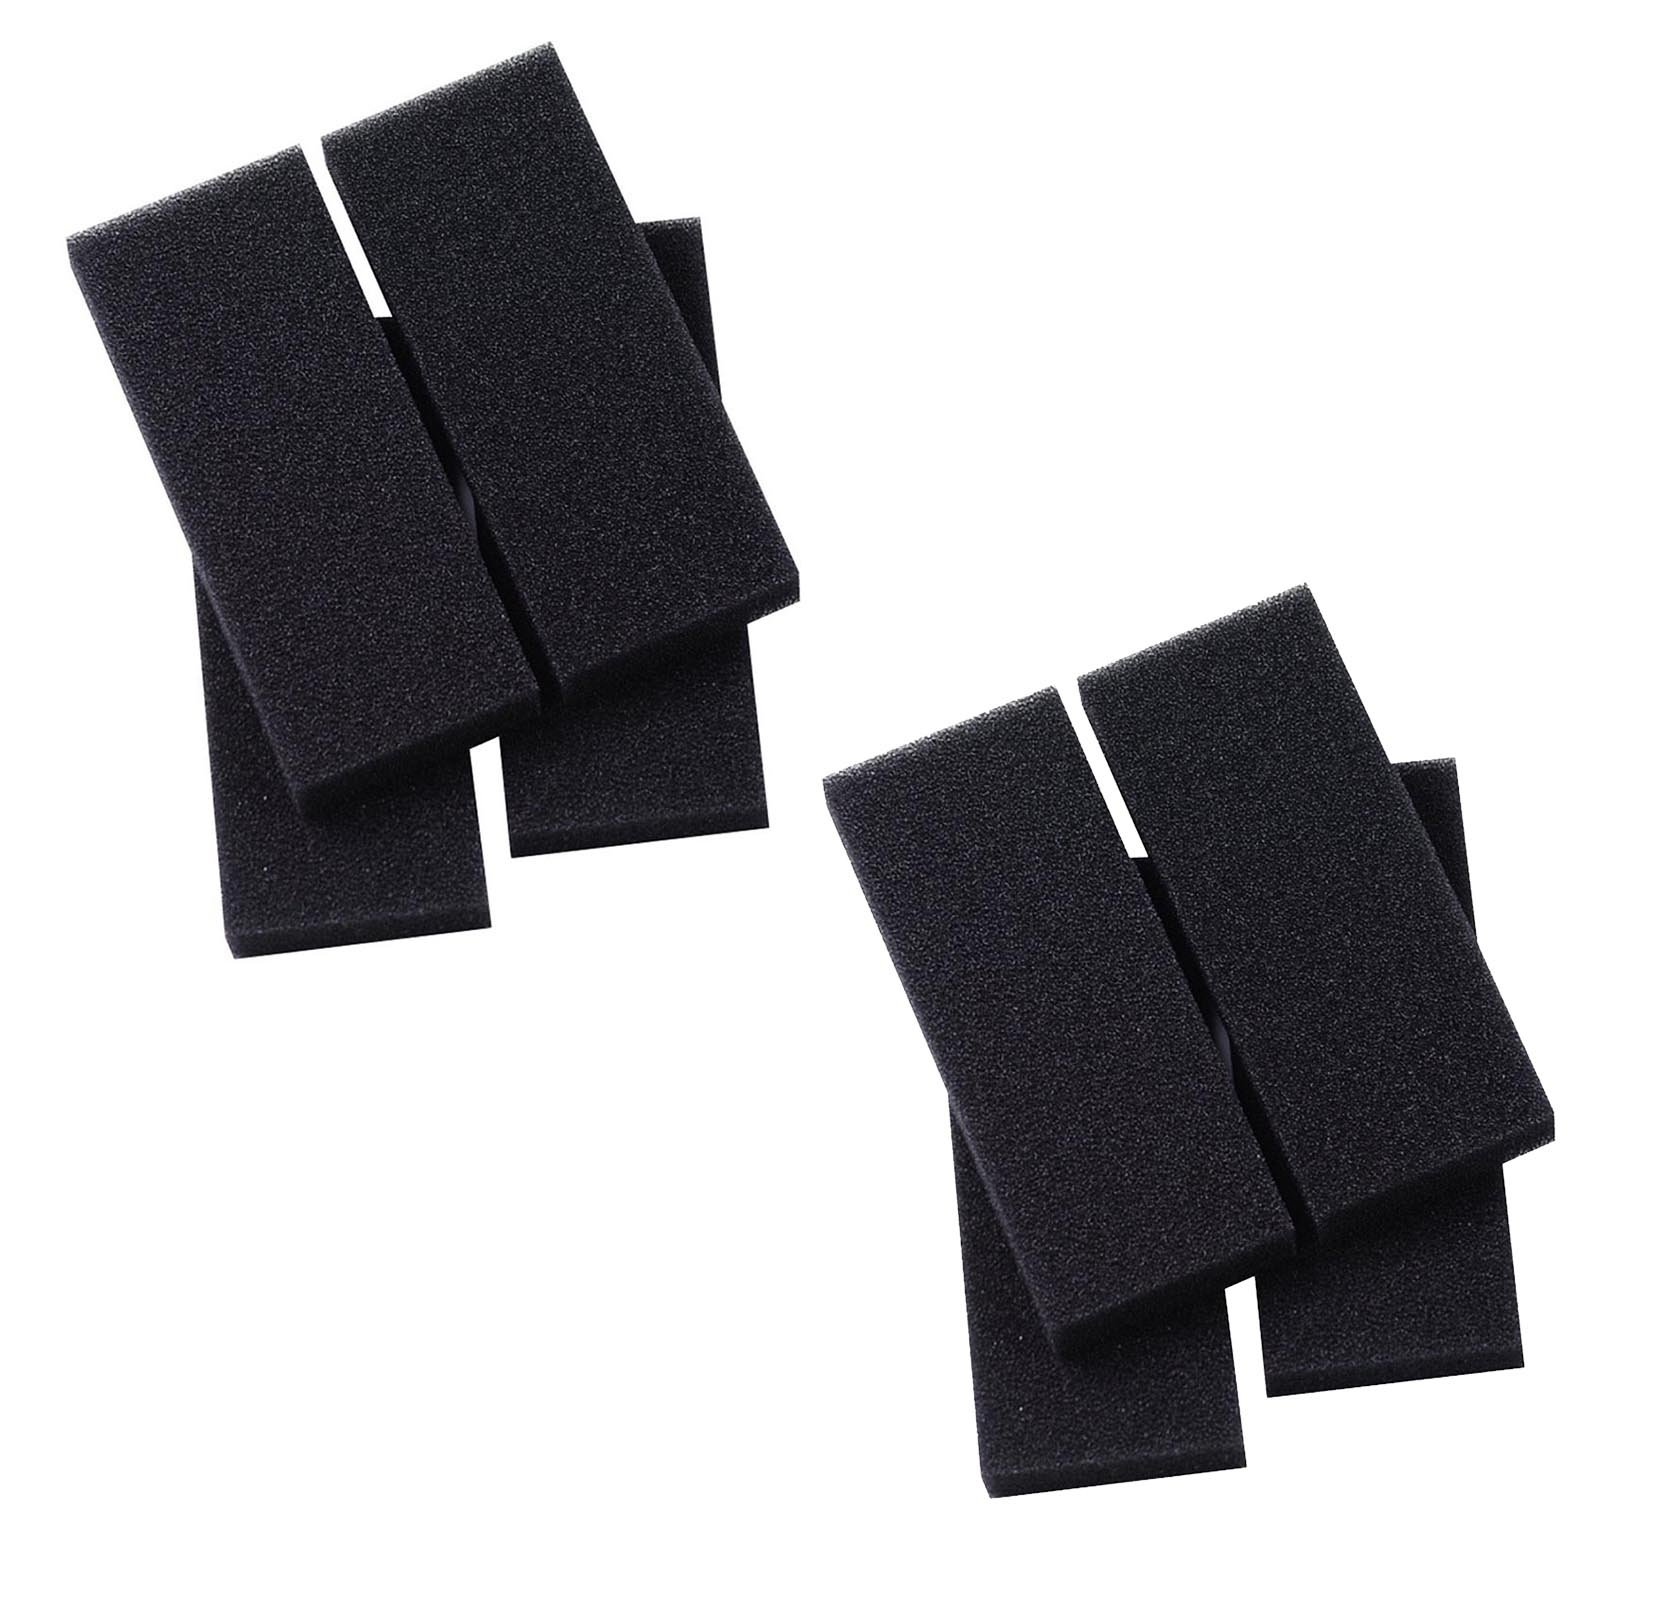 Danner 12305 Replacement Bio Foam Pads for Pondmaster 2000 Pond Filter, 8-Pack